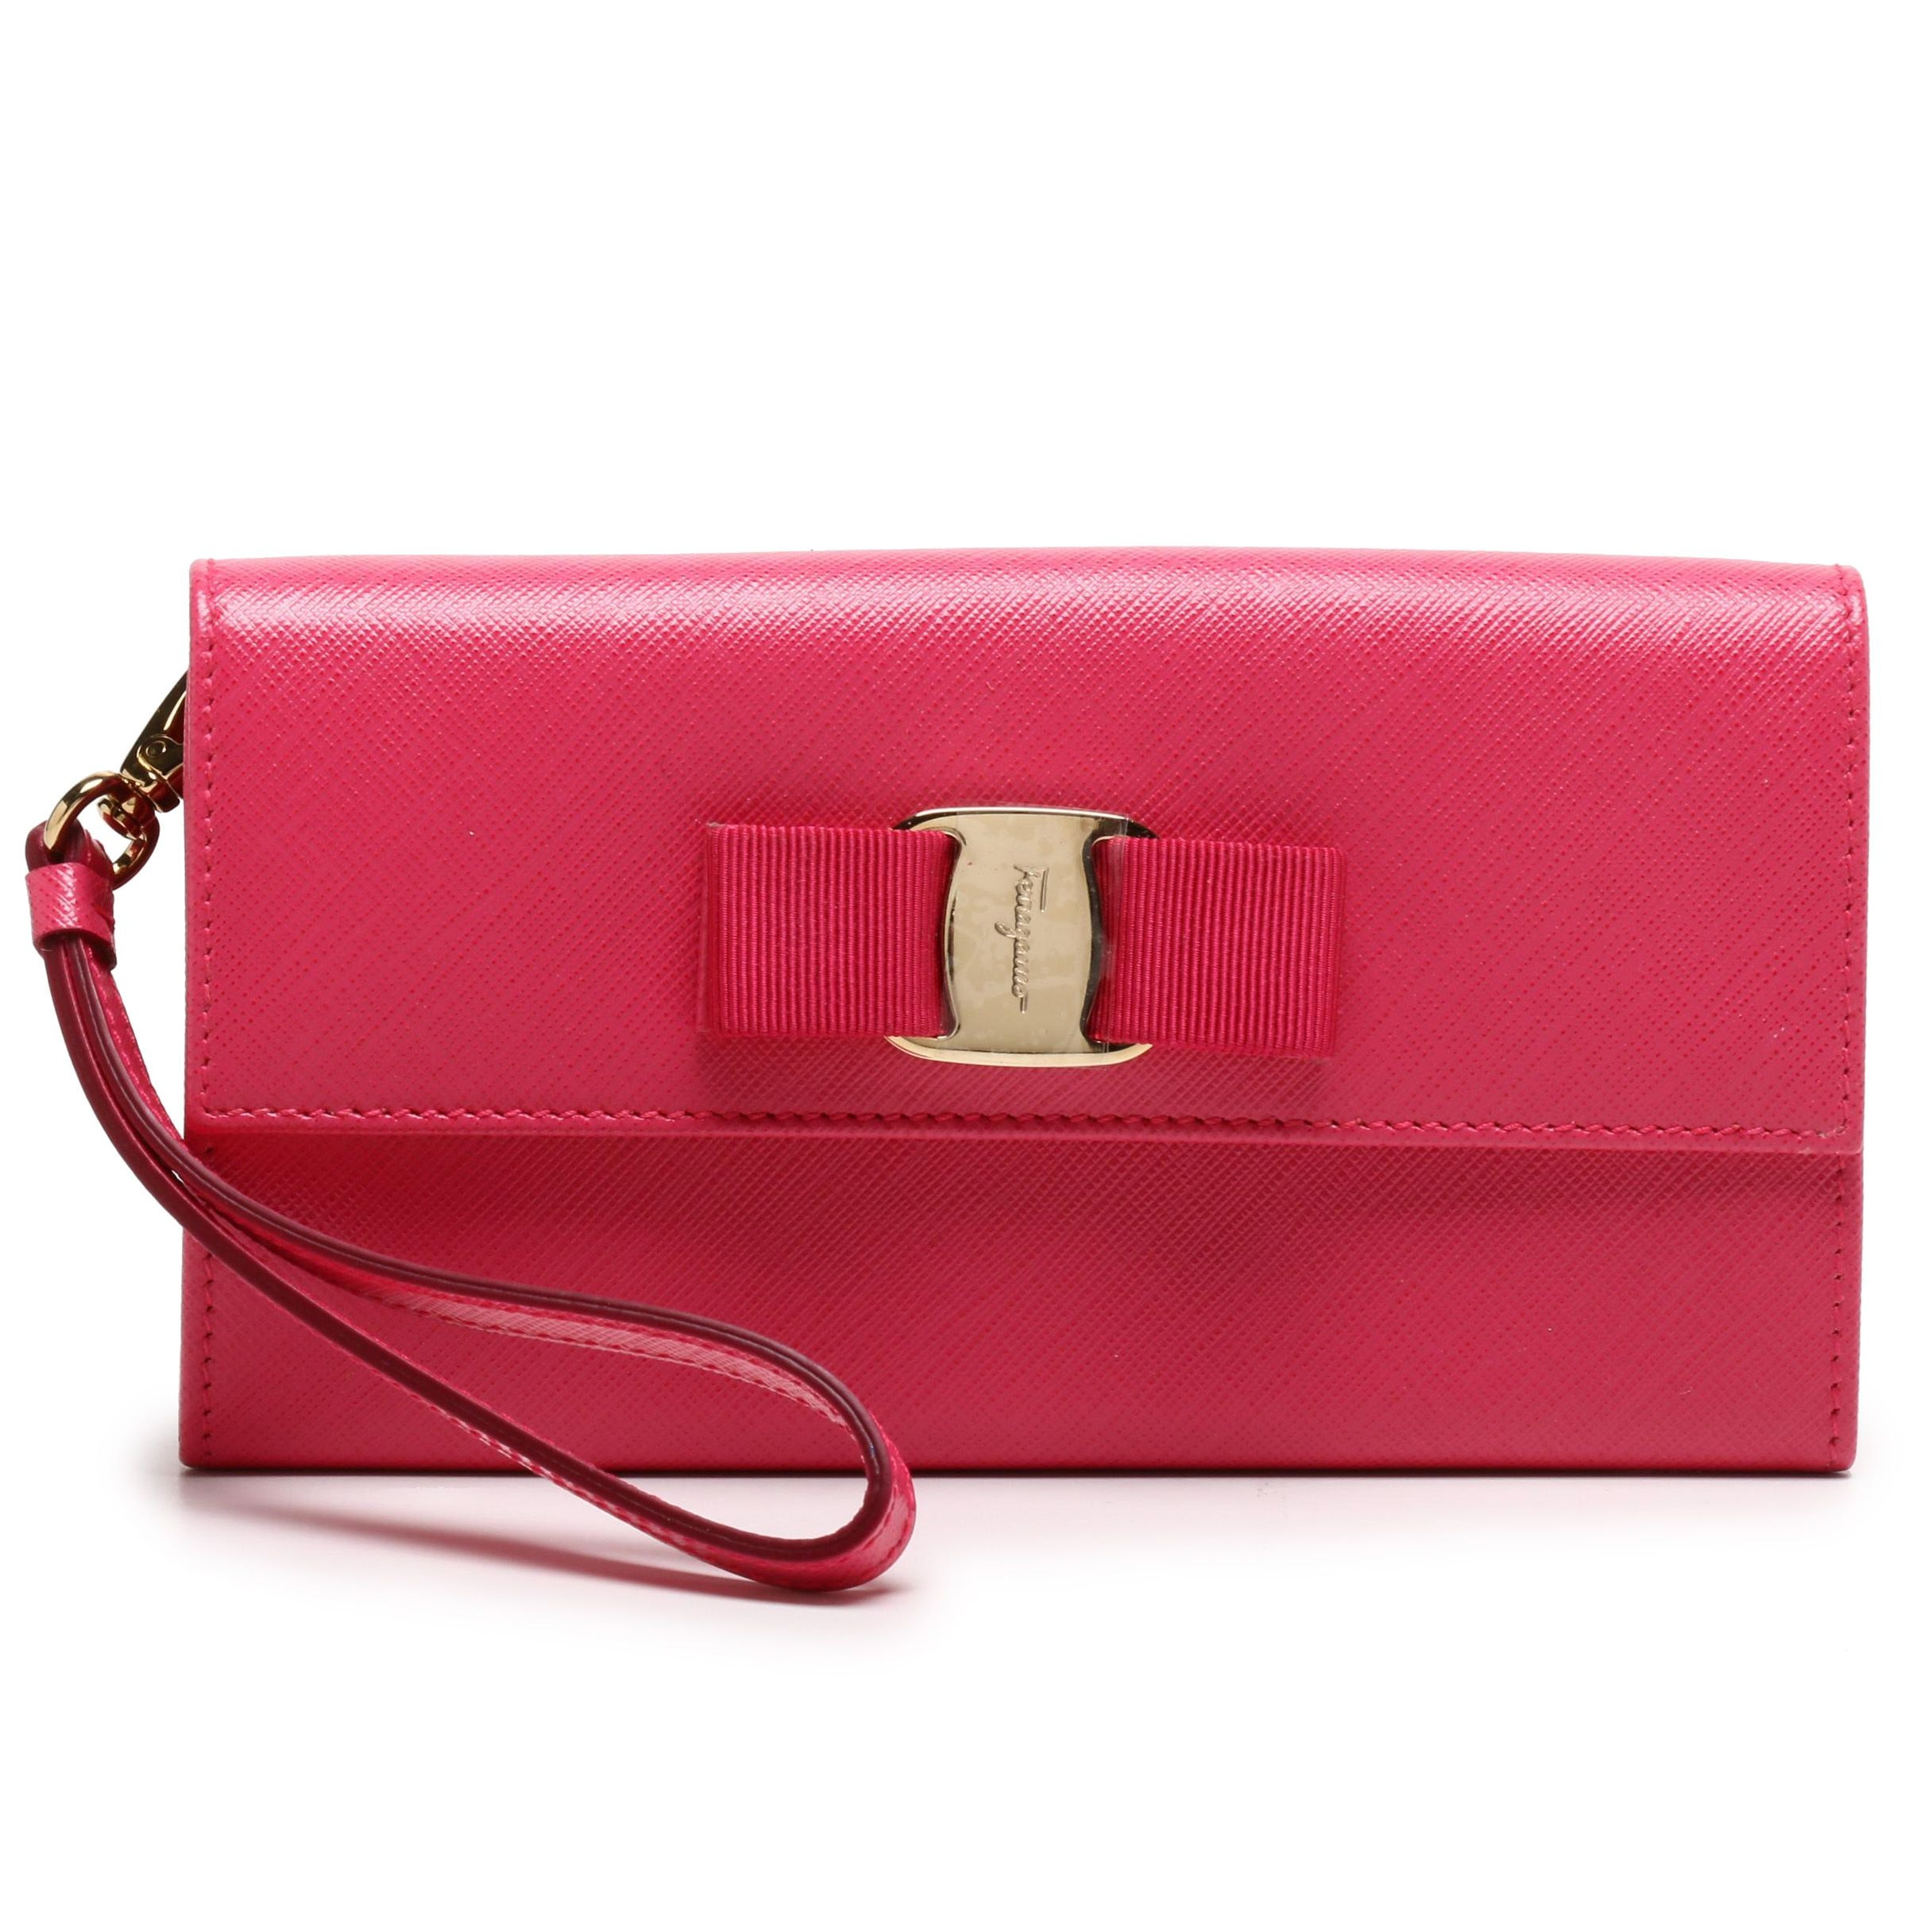 Salvatore Ferragamo Framboise Pink Crosshatch Leather Bow Accented Wristlet